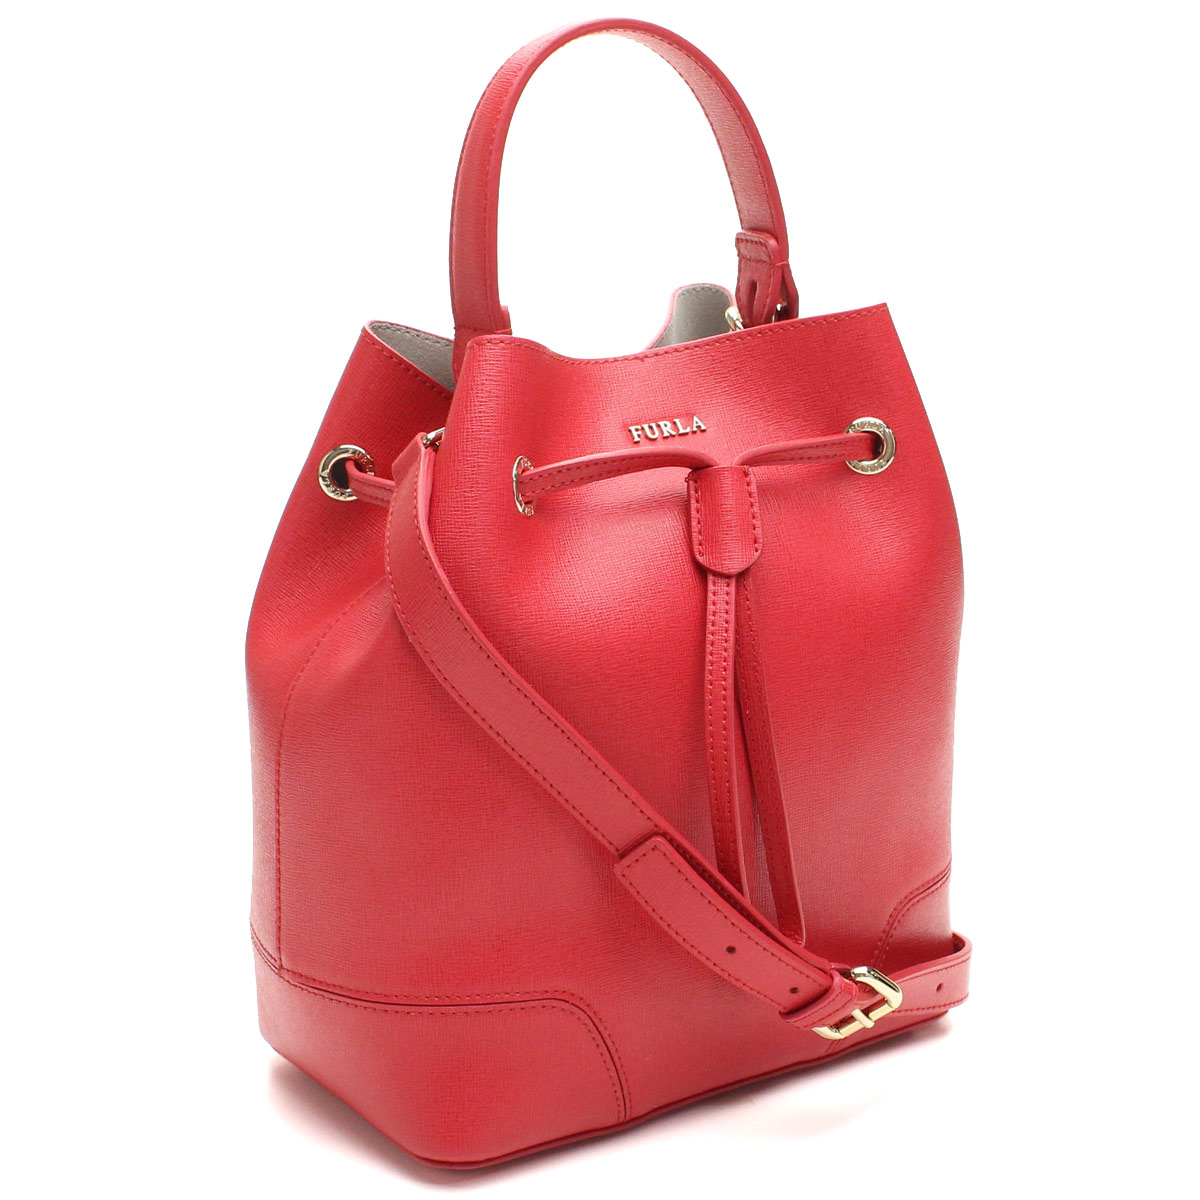 Hit The Total Brand Whole Furla Stacy Handbag Beh3 793933 B30 Rub Ruby Red Series Taxfree Send By Ems Authentic A New Item